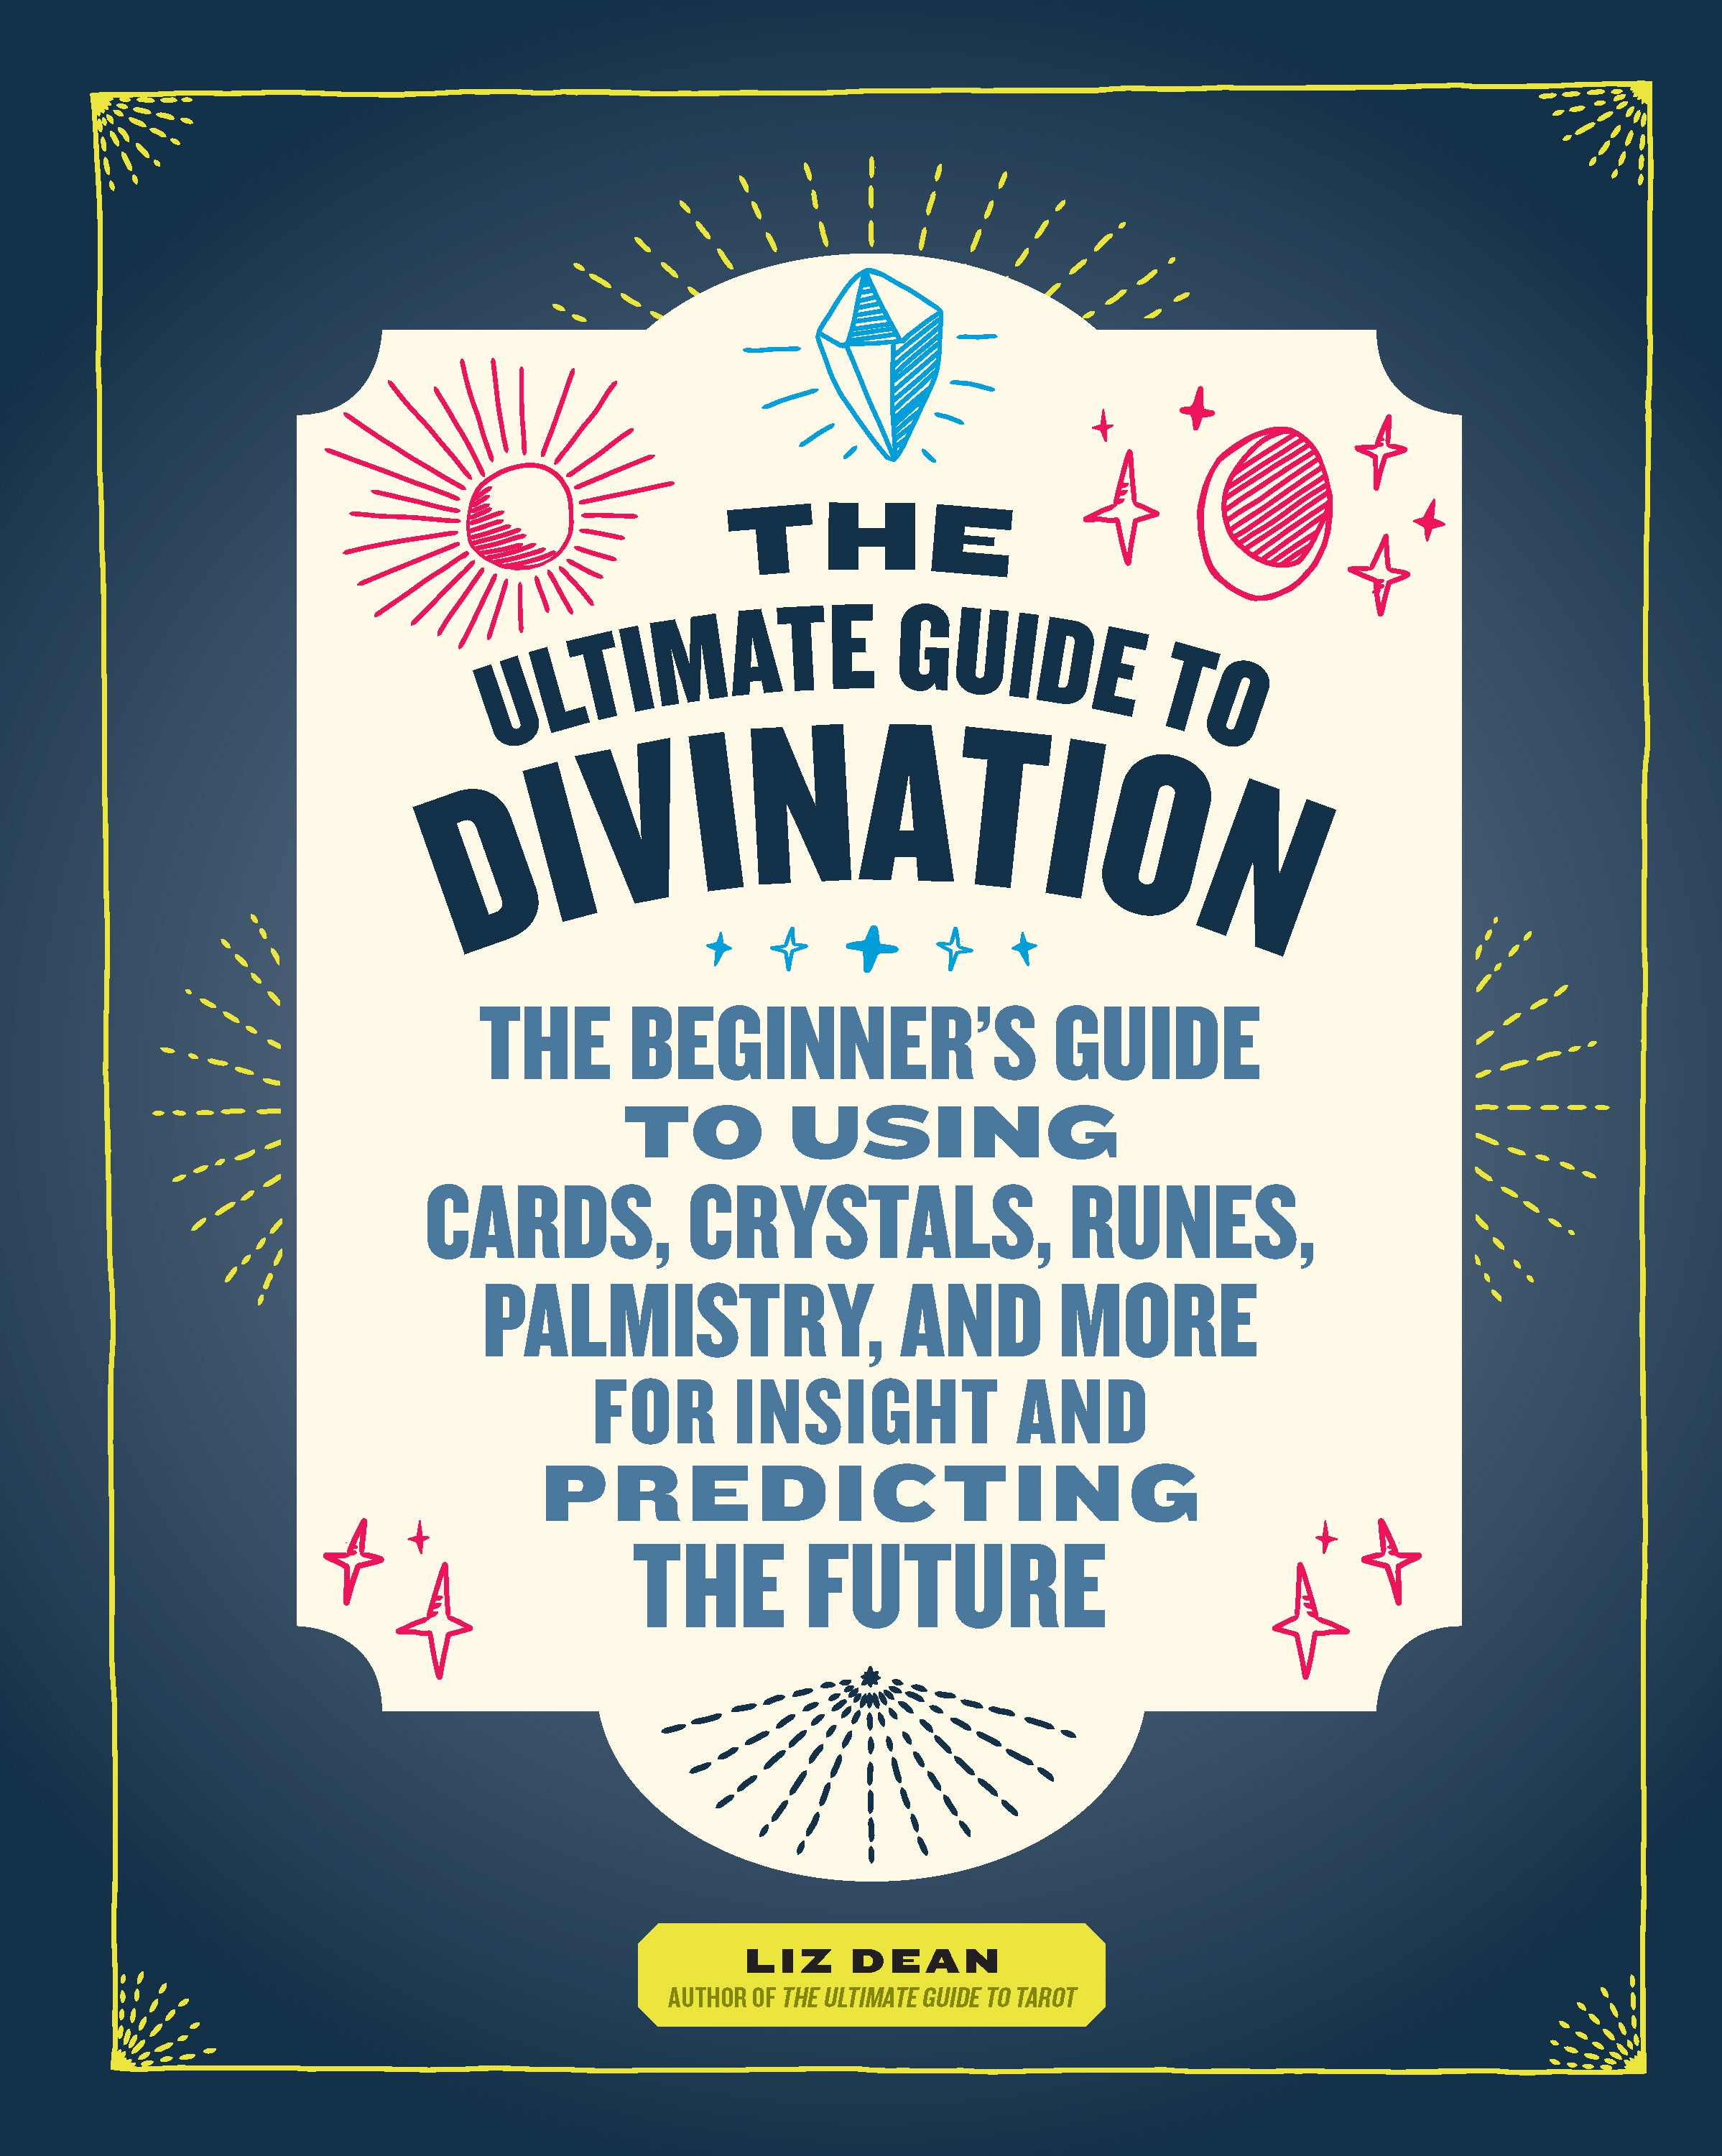 The Ultimate Guide to Divination - Liz Dean - 9781592337781